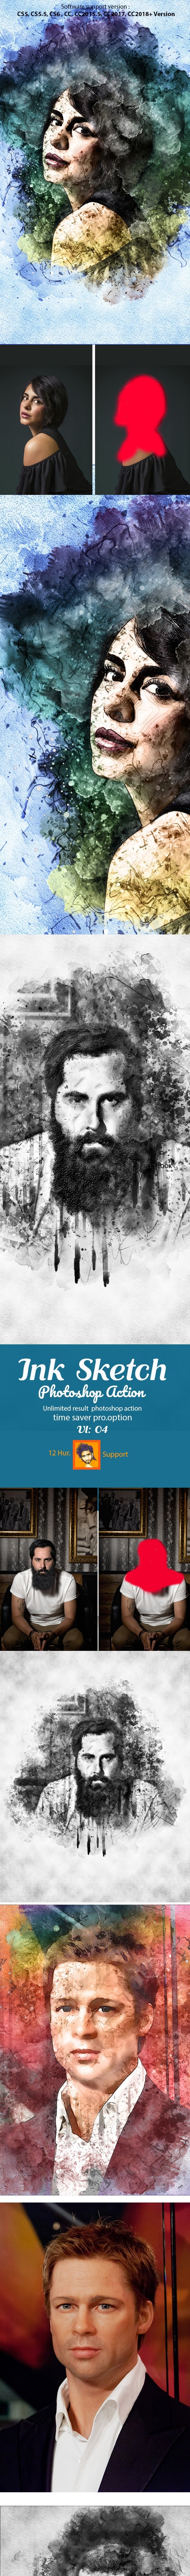 Ink Sketch Photoshop Action - Actions Photoshop